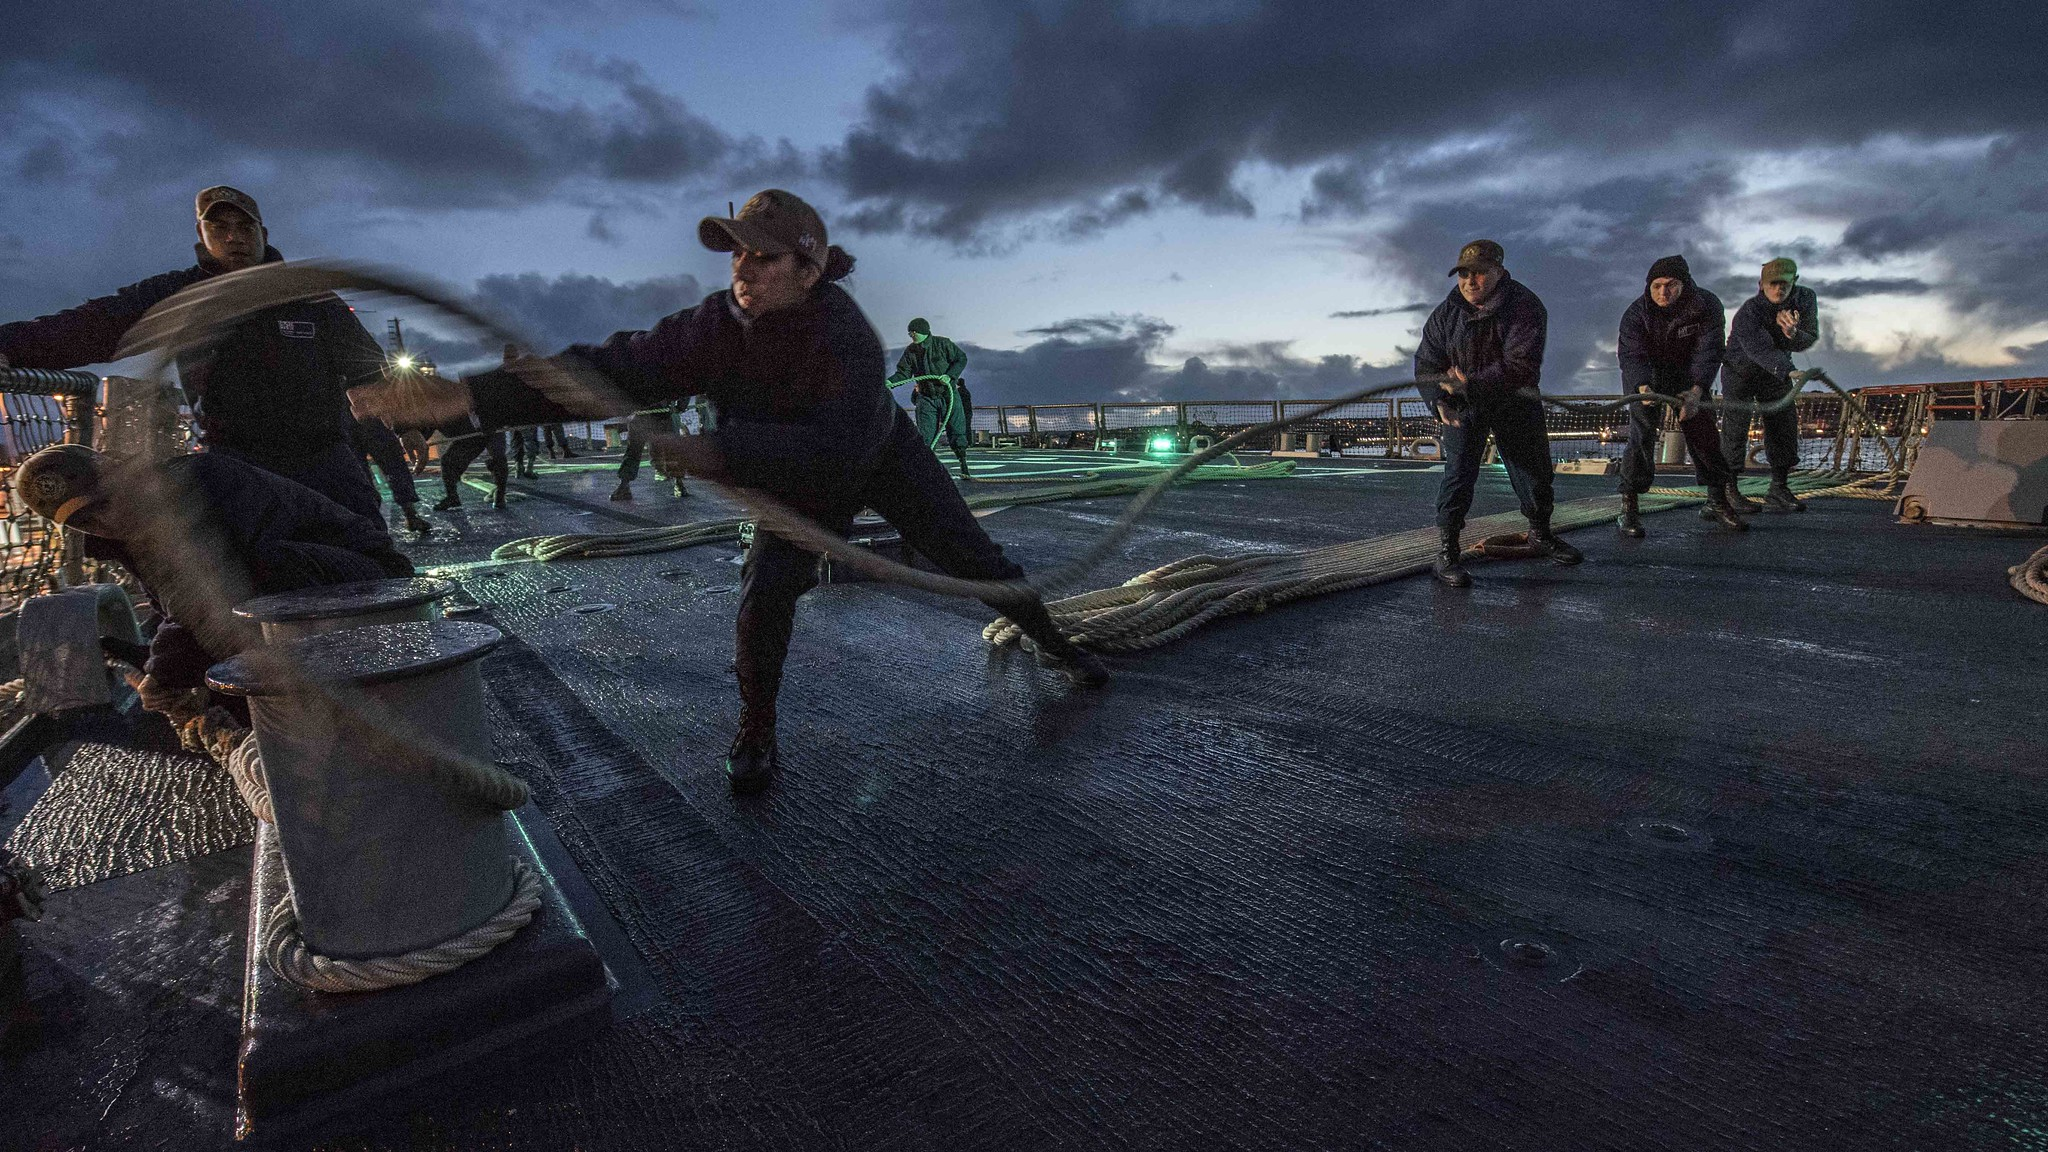 Sonar Technician (Surface) 2nd Class Vanessa Diaz, middle, throws a slacked mooring line around a set of bits during a sea and anchor evolution aboard the Arleigh Burke-class guided-missile destroyer USS Carney (DDG 64), Dec. 11, 2019, in Plymouth, England. (Mass Communication Specialist 1st Class Fred Gray IV/Navy)